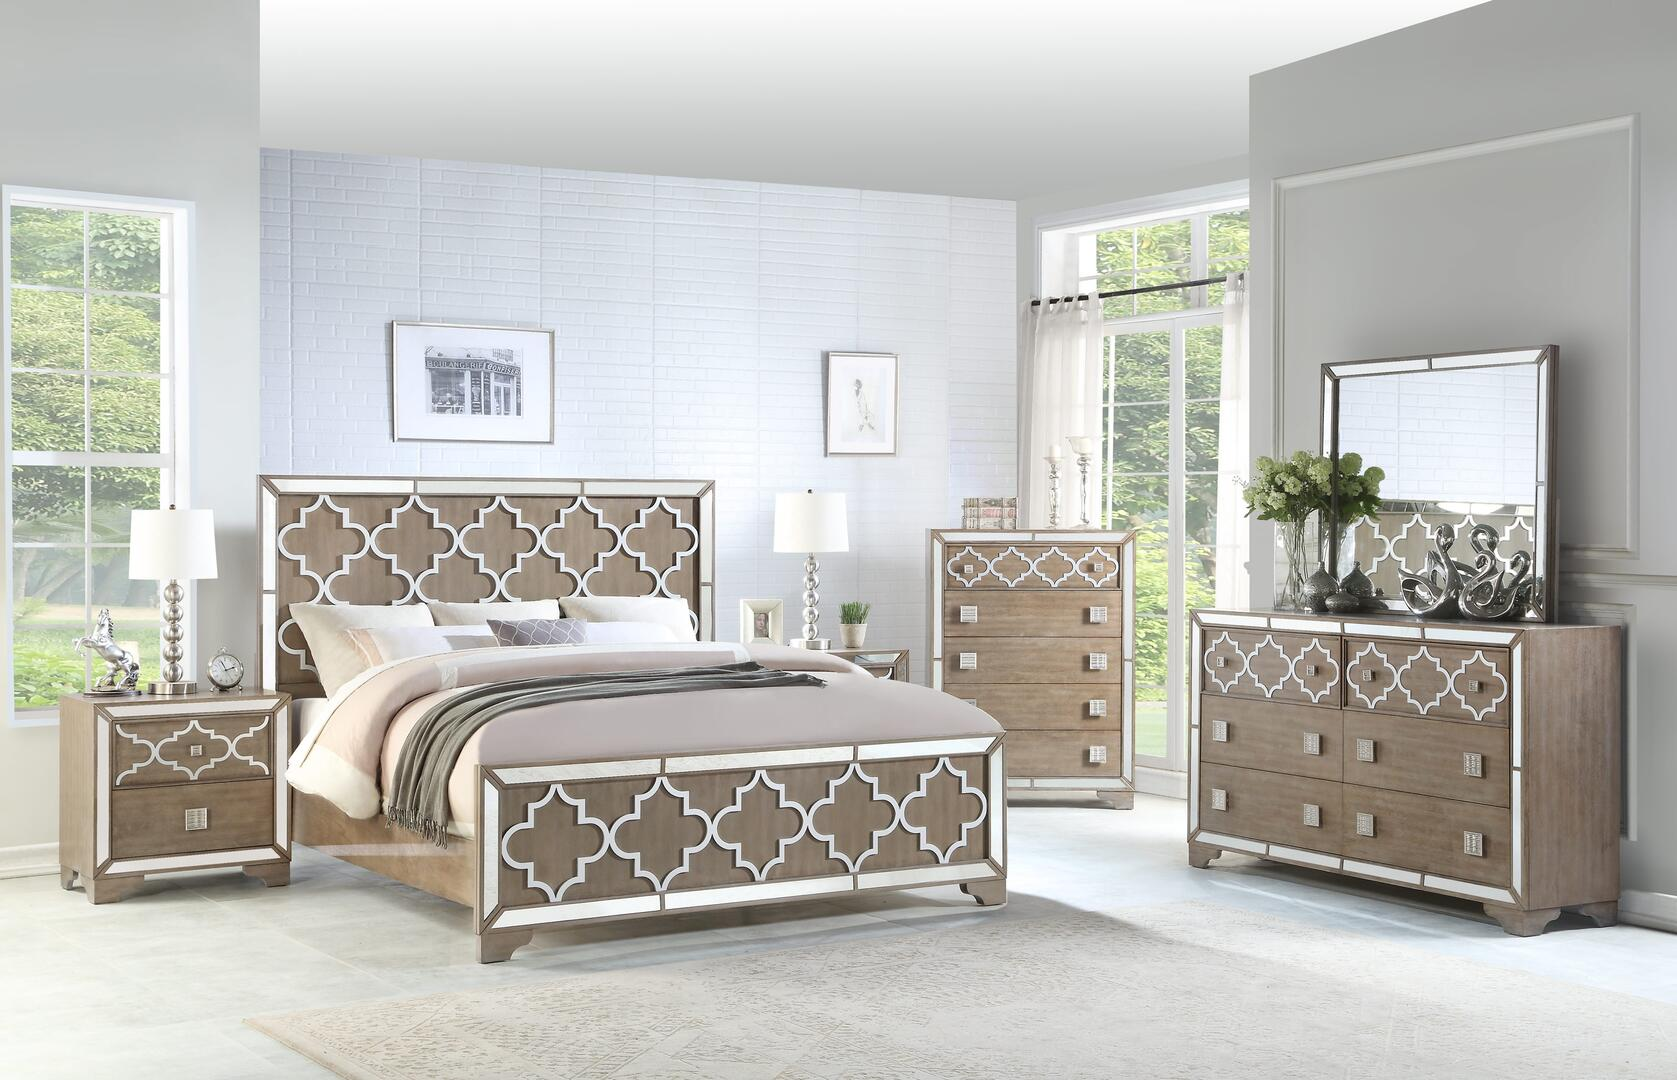 Cosmos Furniture Ivony 6 Piece King Size Bedroom Set